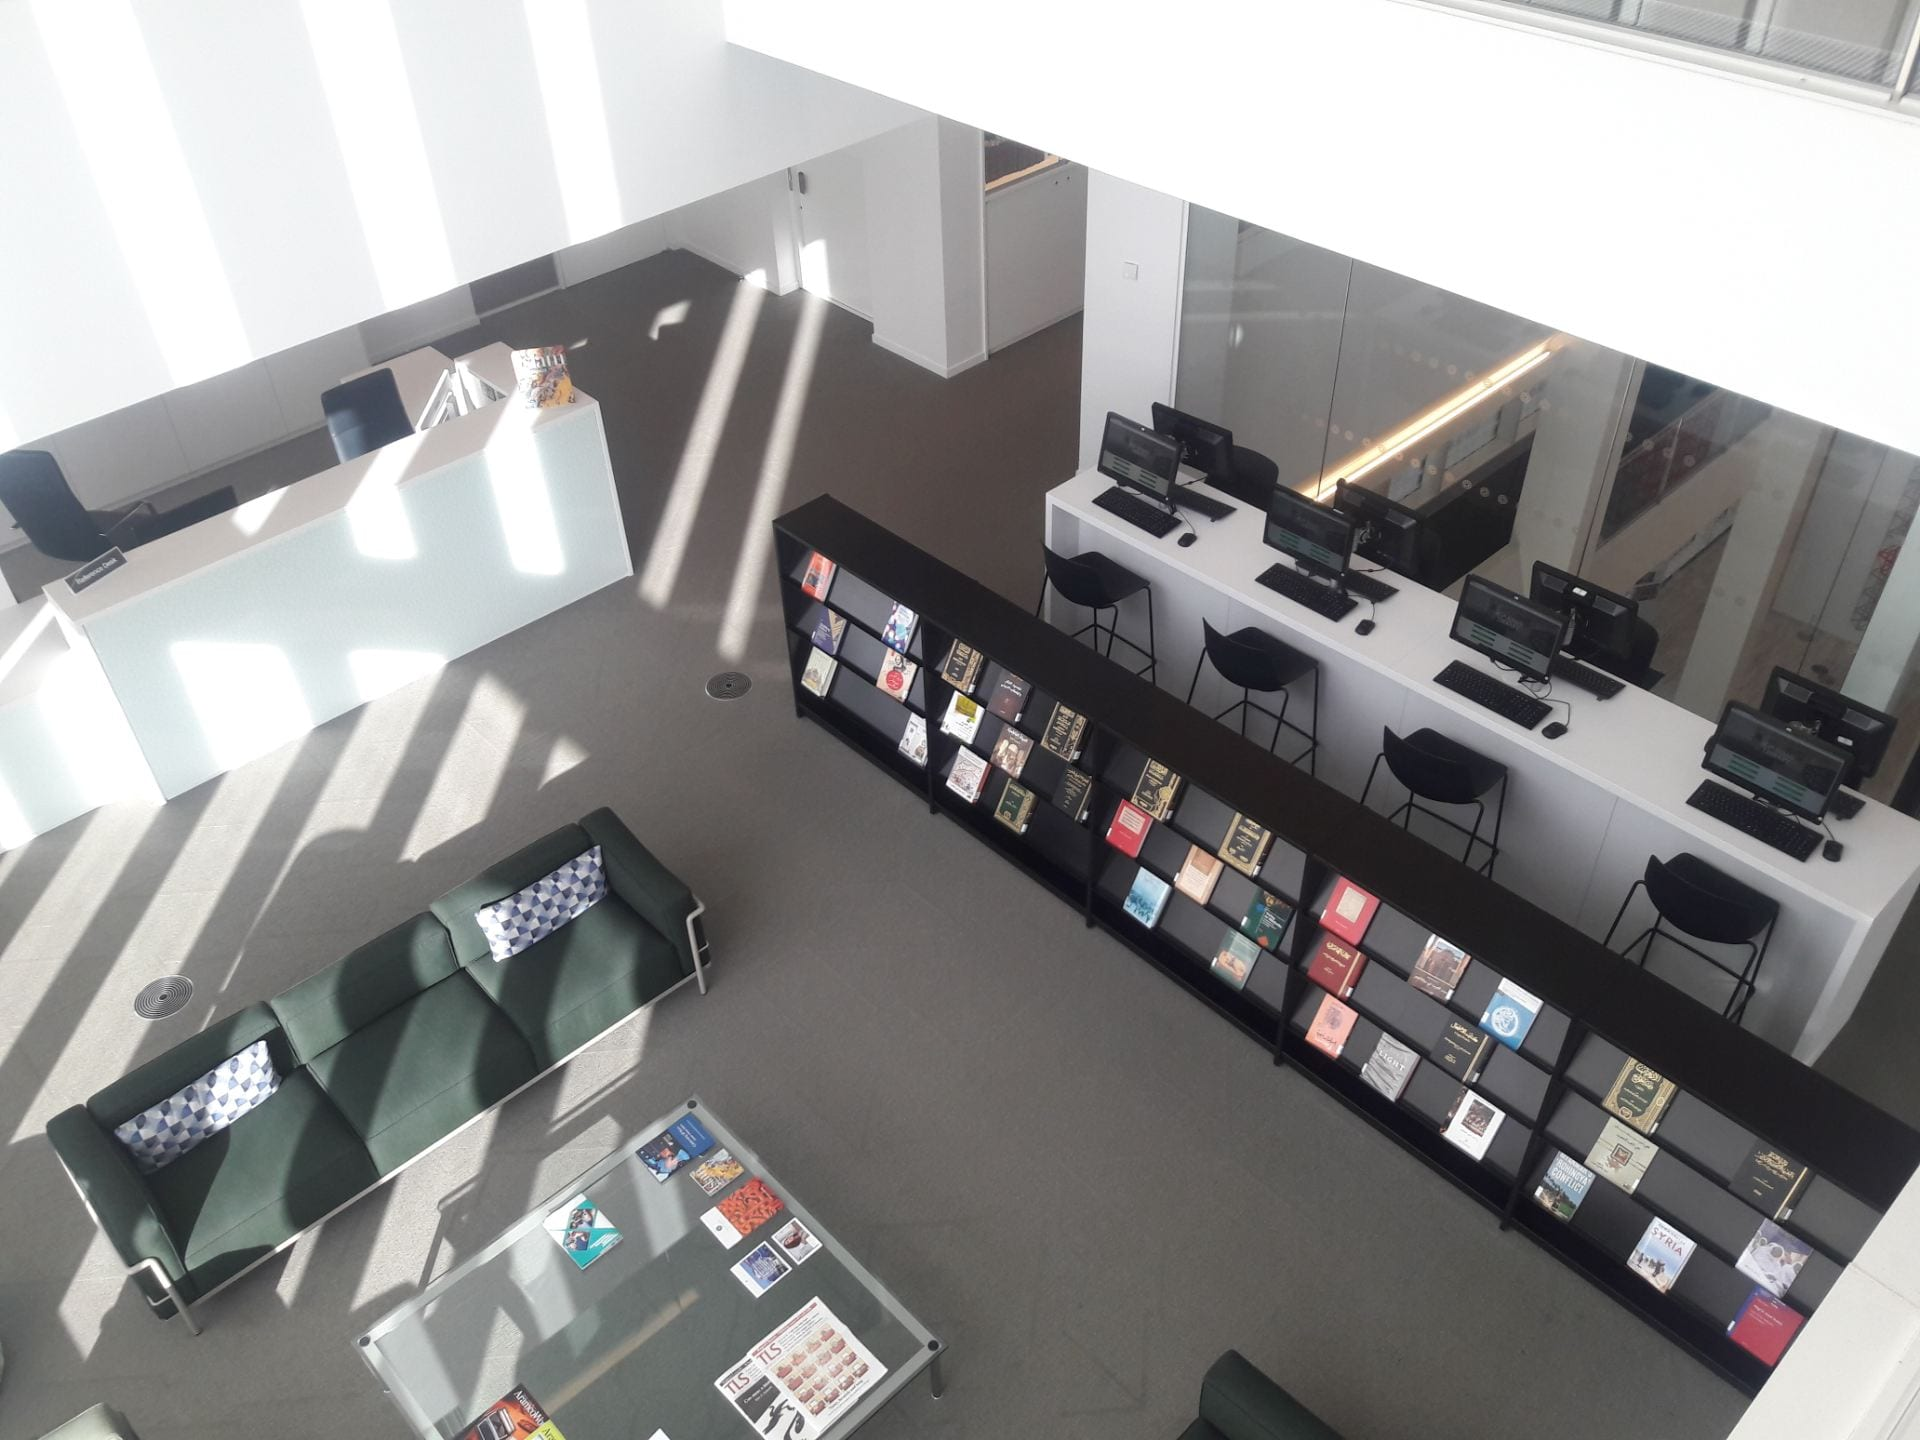 The entrance area of the Aga Khan Library taken from the floor above. The Library Help desk, soft furnishing, coffee table, journal shelves and catalogues and stools can be seen. There is light streaming in.